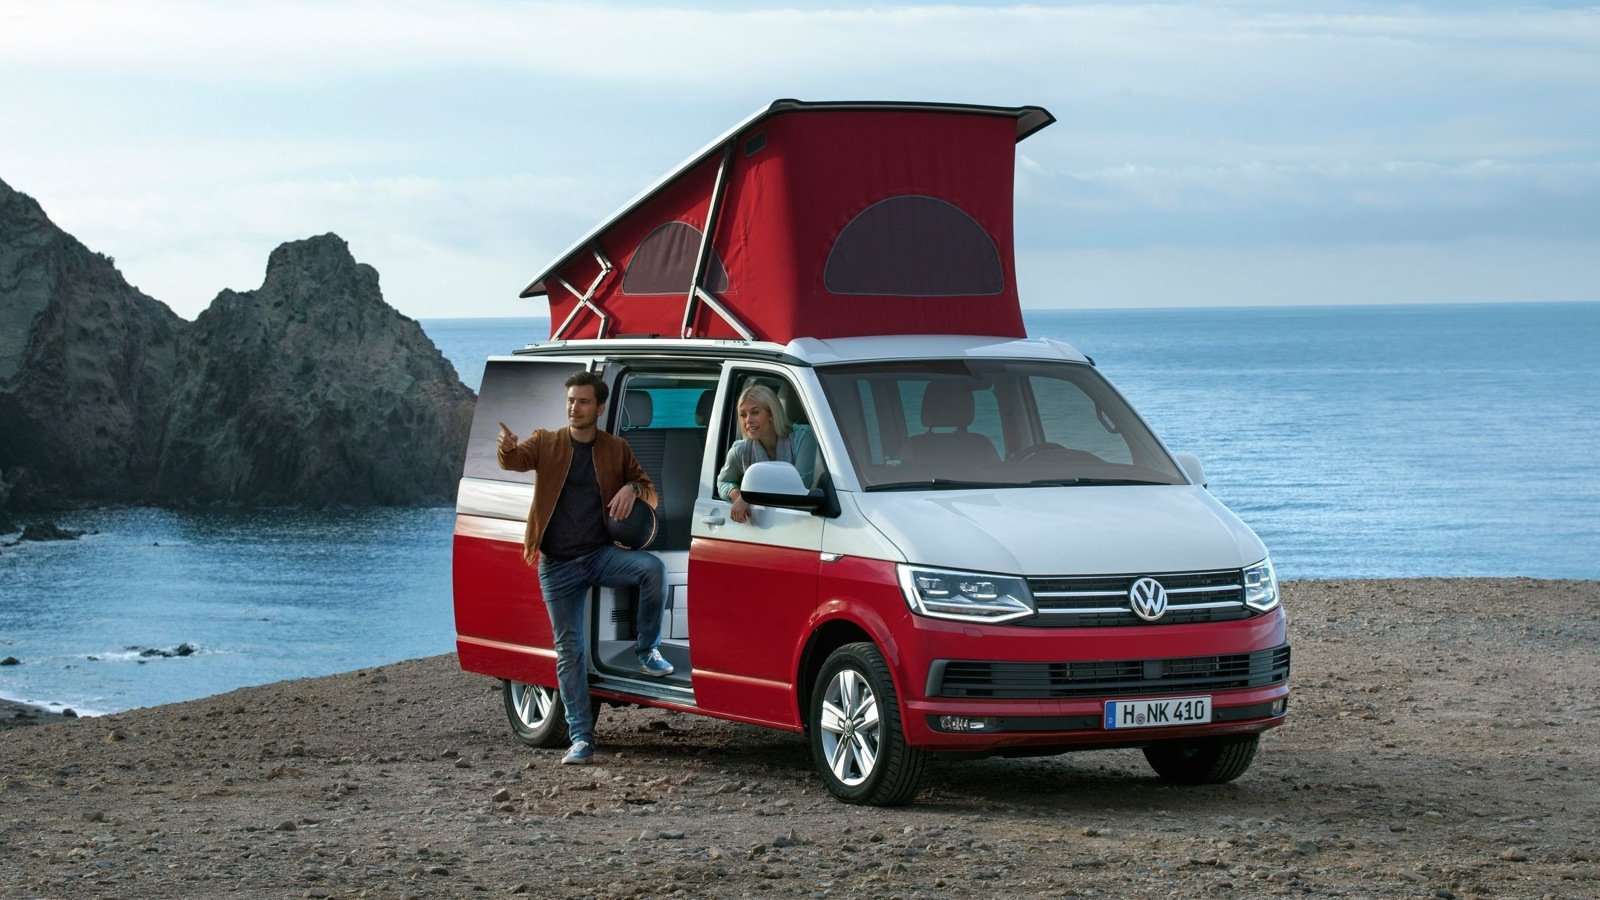 2017 Tesla Price Range >> Volkswagen California campervan under consideration for Australia - photos | CarAdvice